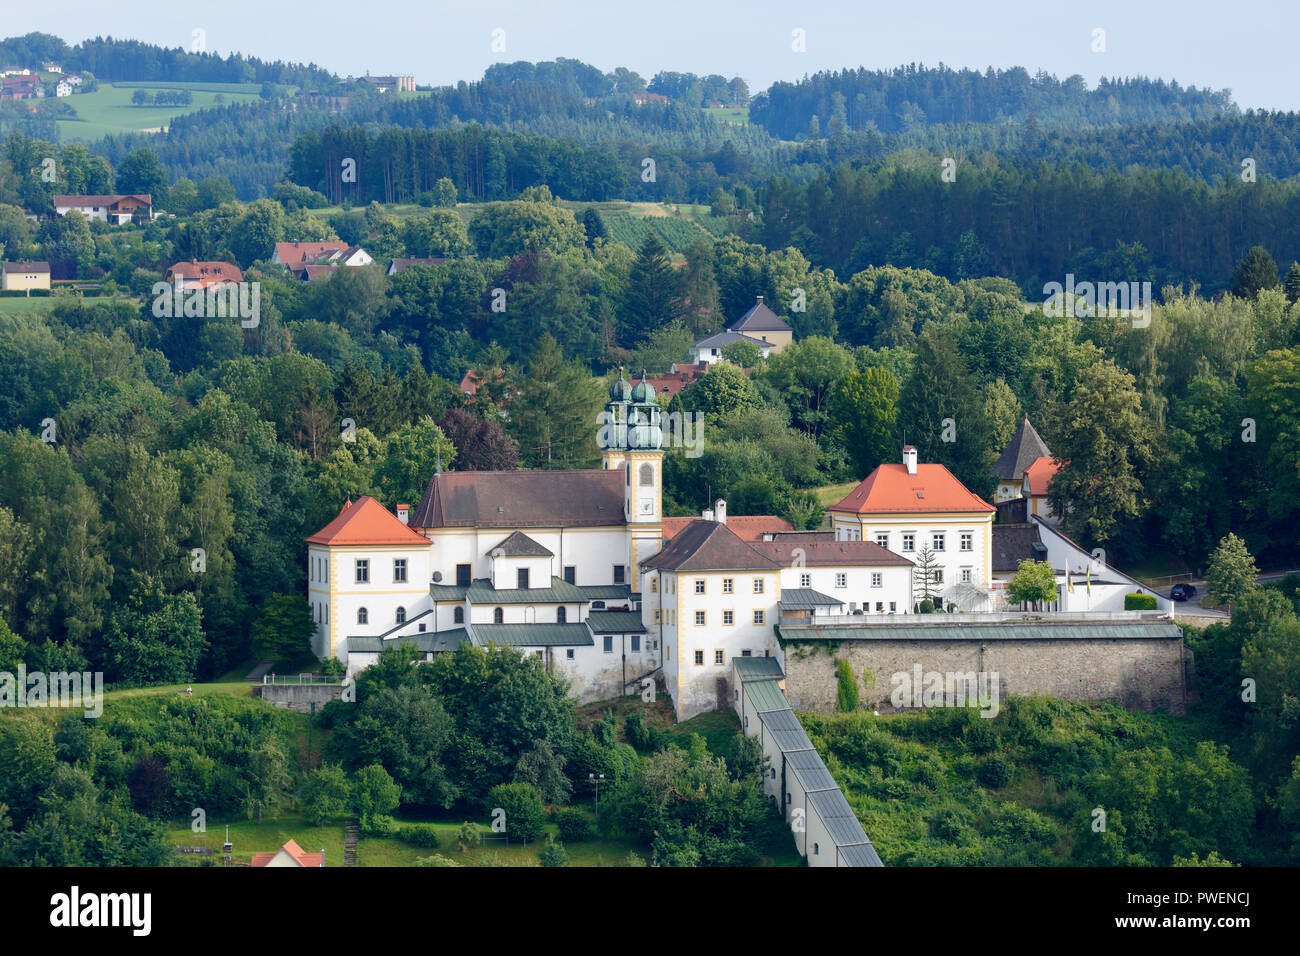 D-Passau, Danube, Inn, Ilz, D-Passau-Innstadt, pilgrimage church and monastery Maria Hilf, baroque, landscape, panoramic view, hilly country, woodland, forested area - Stock Image